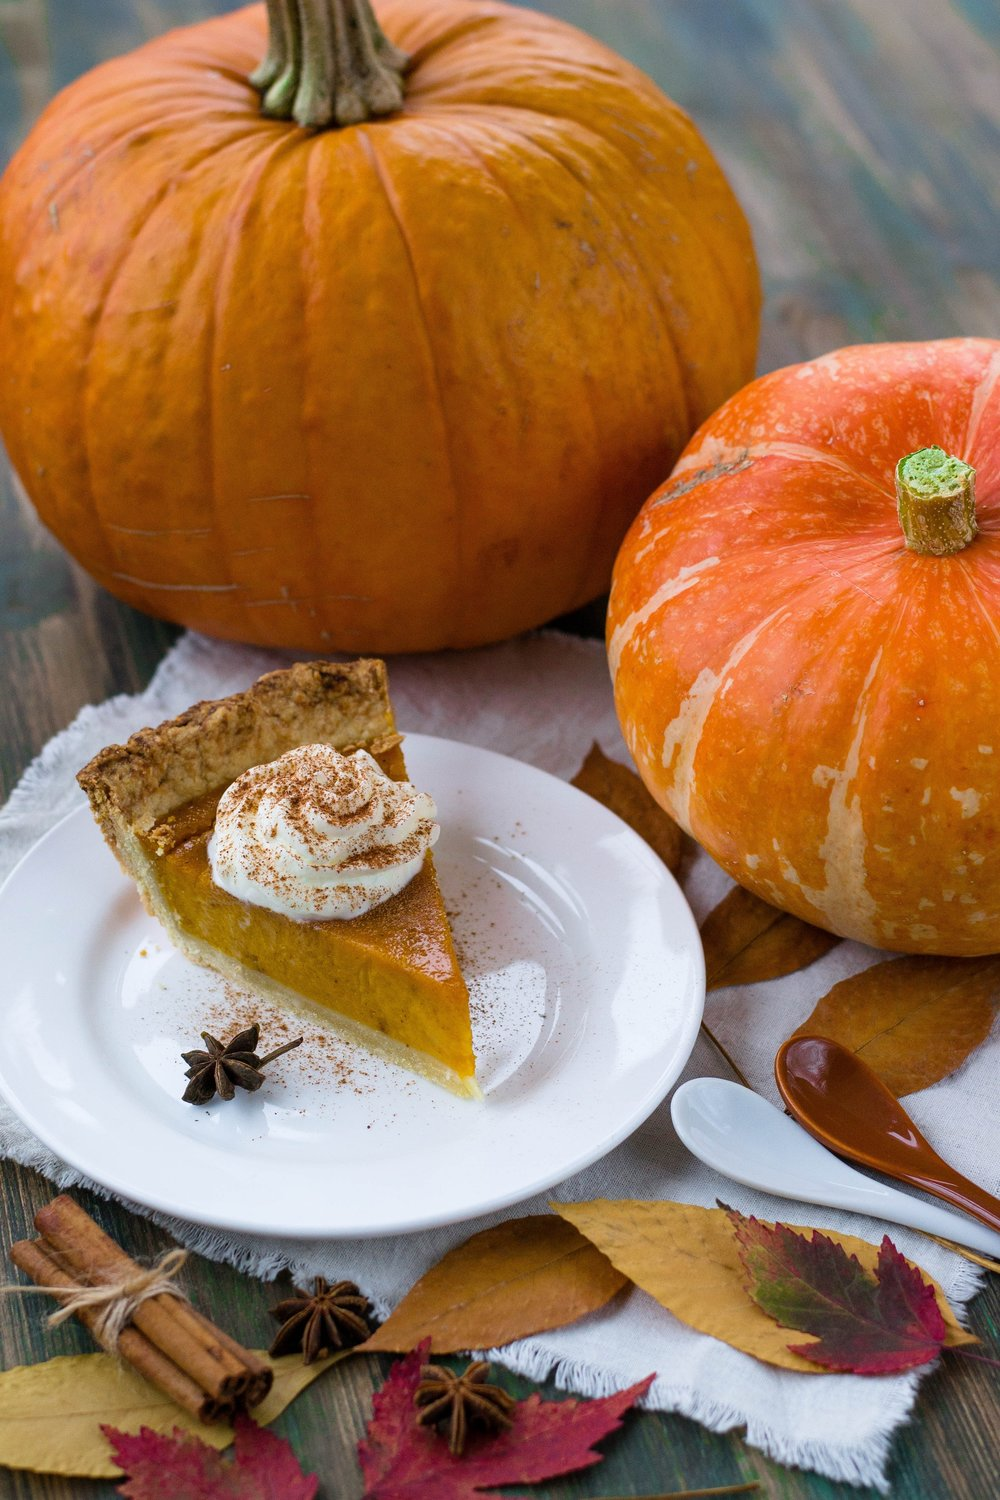 autumn-bright-cake-248469.jpg